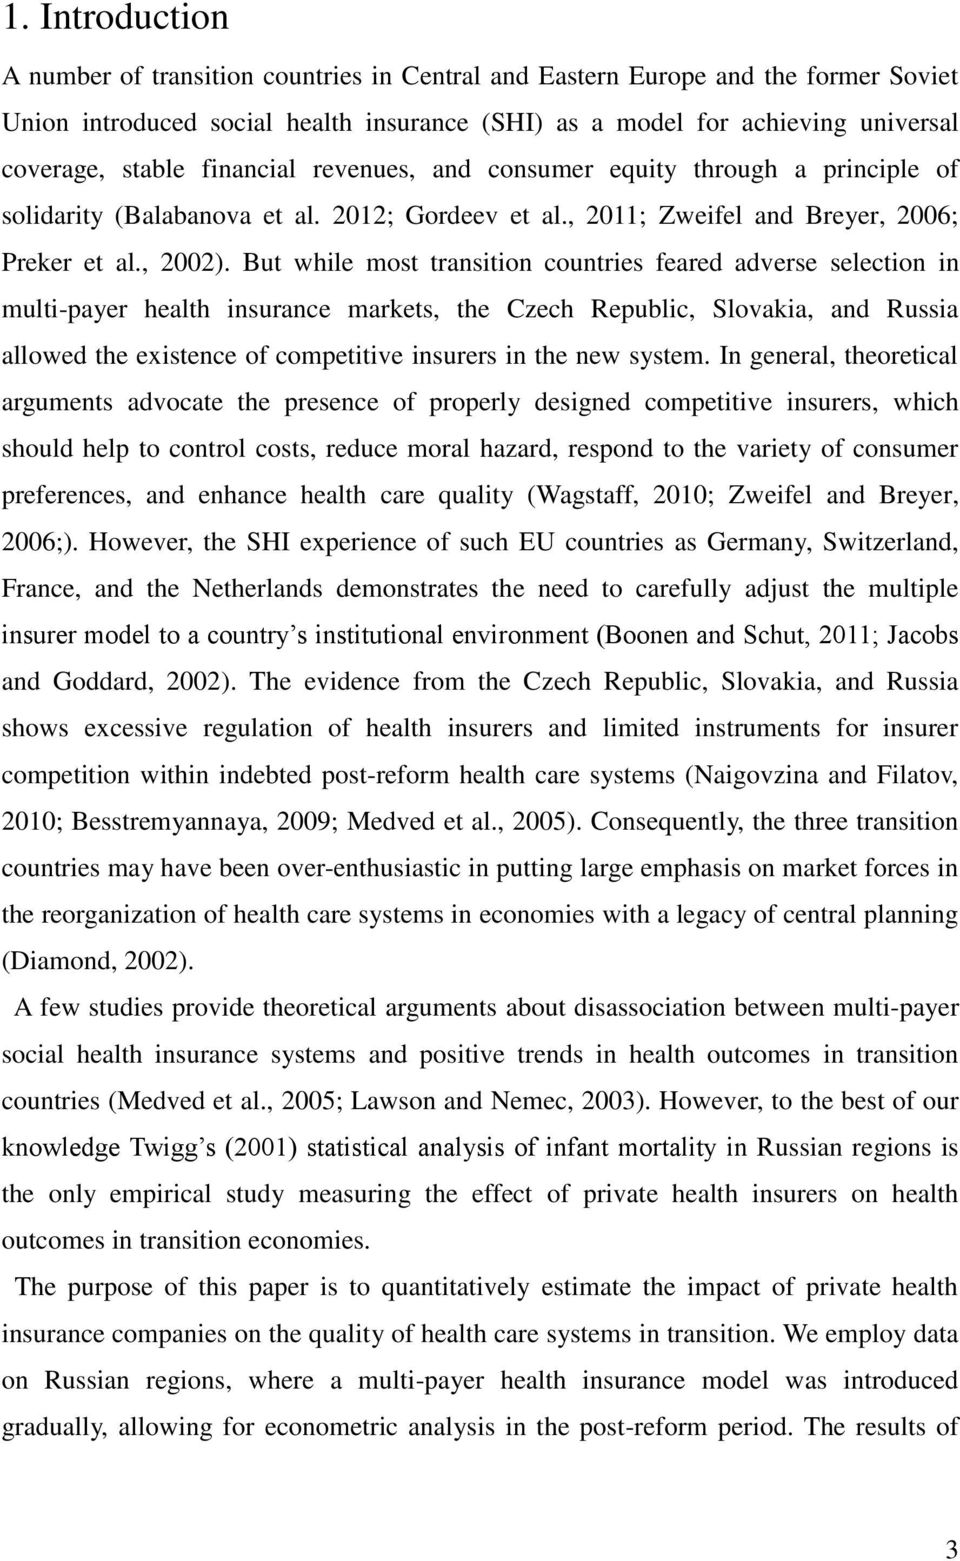 But while most transition countries feared adverse selection in multi-payer health insurance markets, the Czech Republic, Slovakia, and Russia allowed the existence of competitive insurers in the new